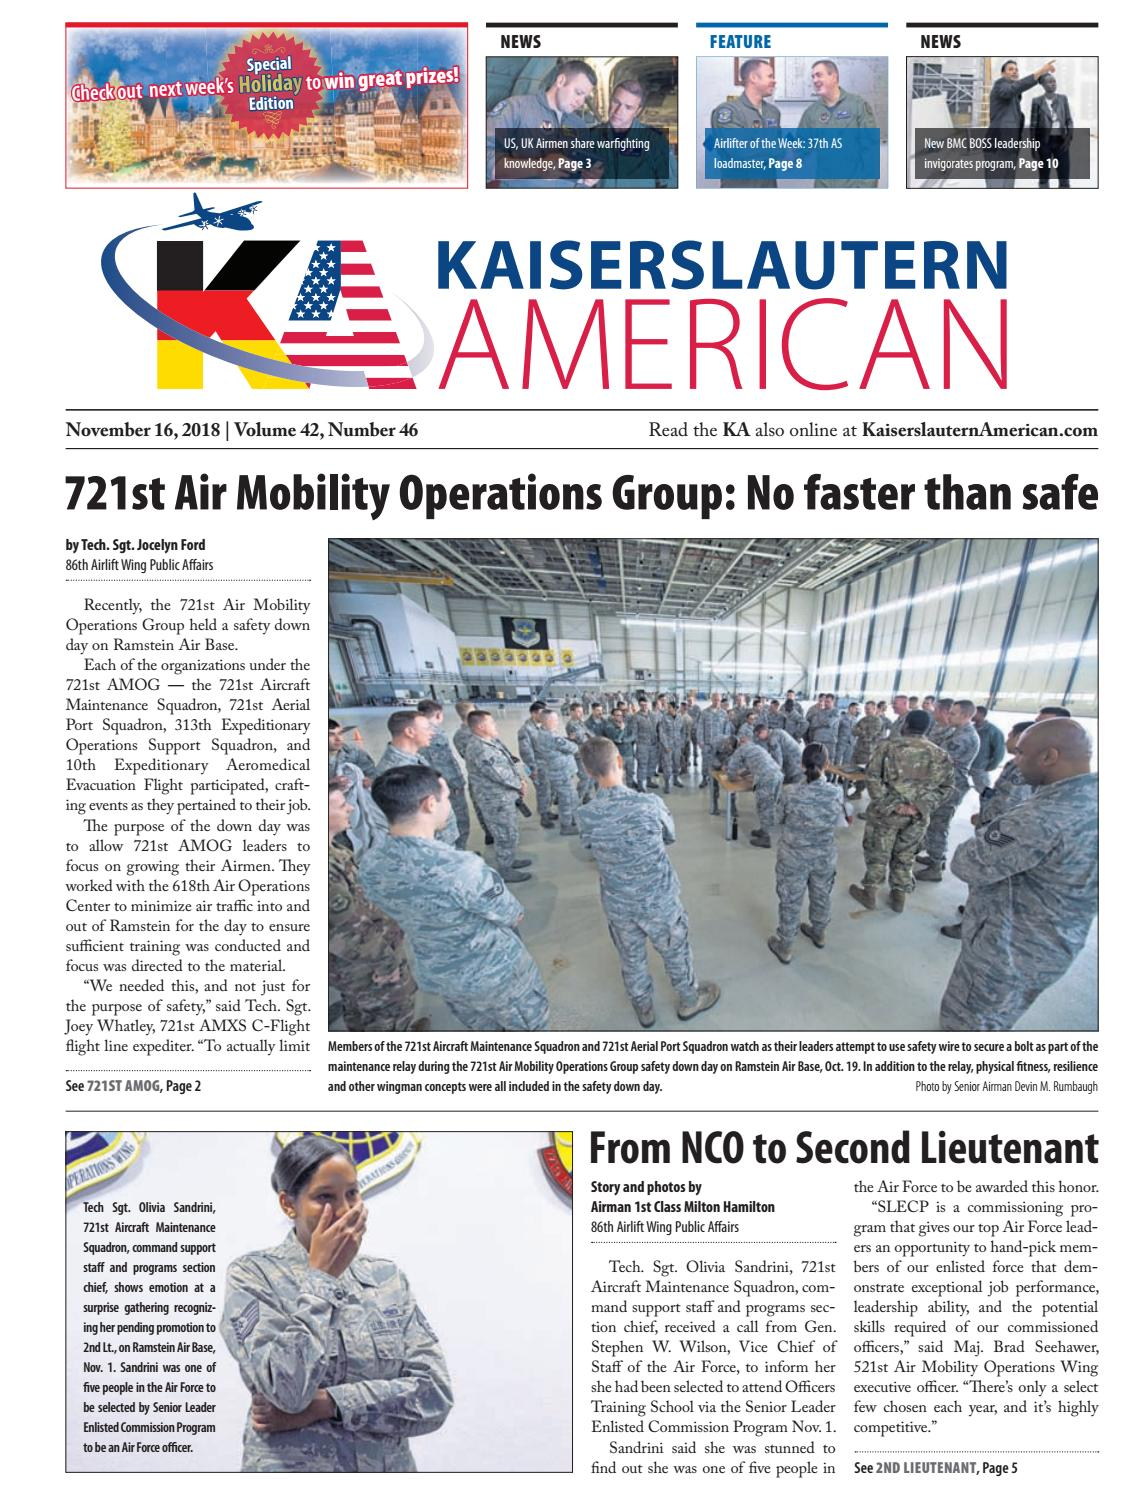 Kaiserslautern American, November 16, 2018 by AdvantiPro GmbH - issuu